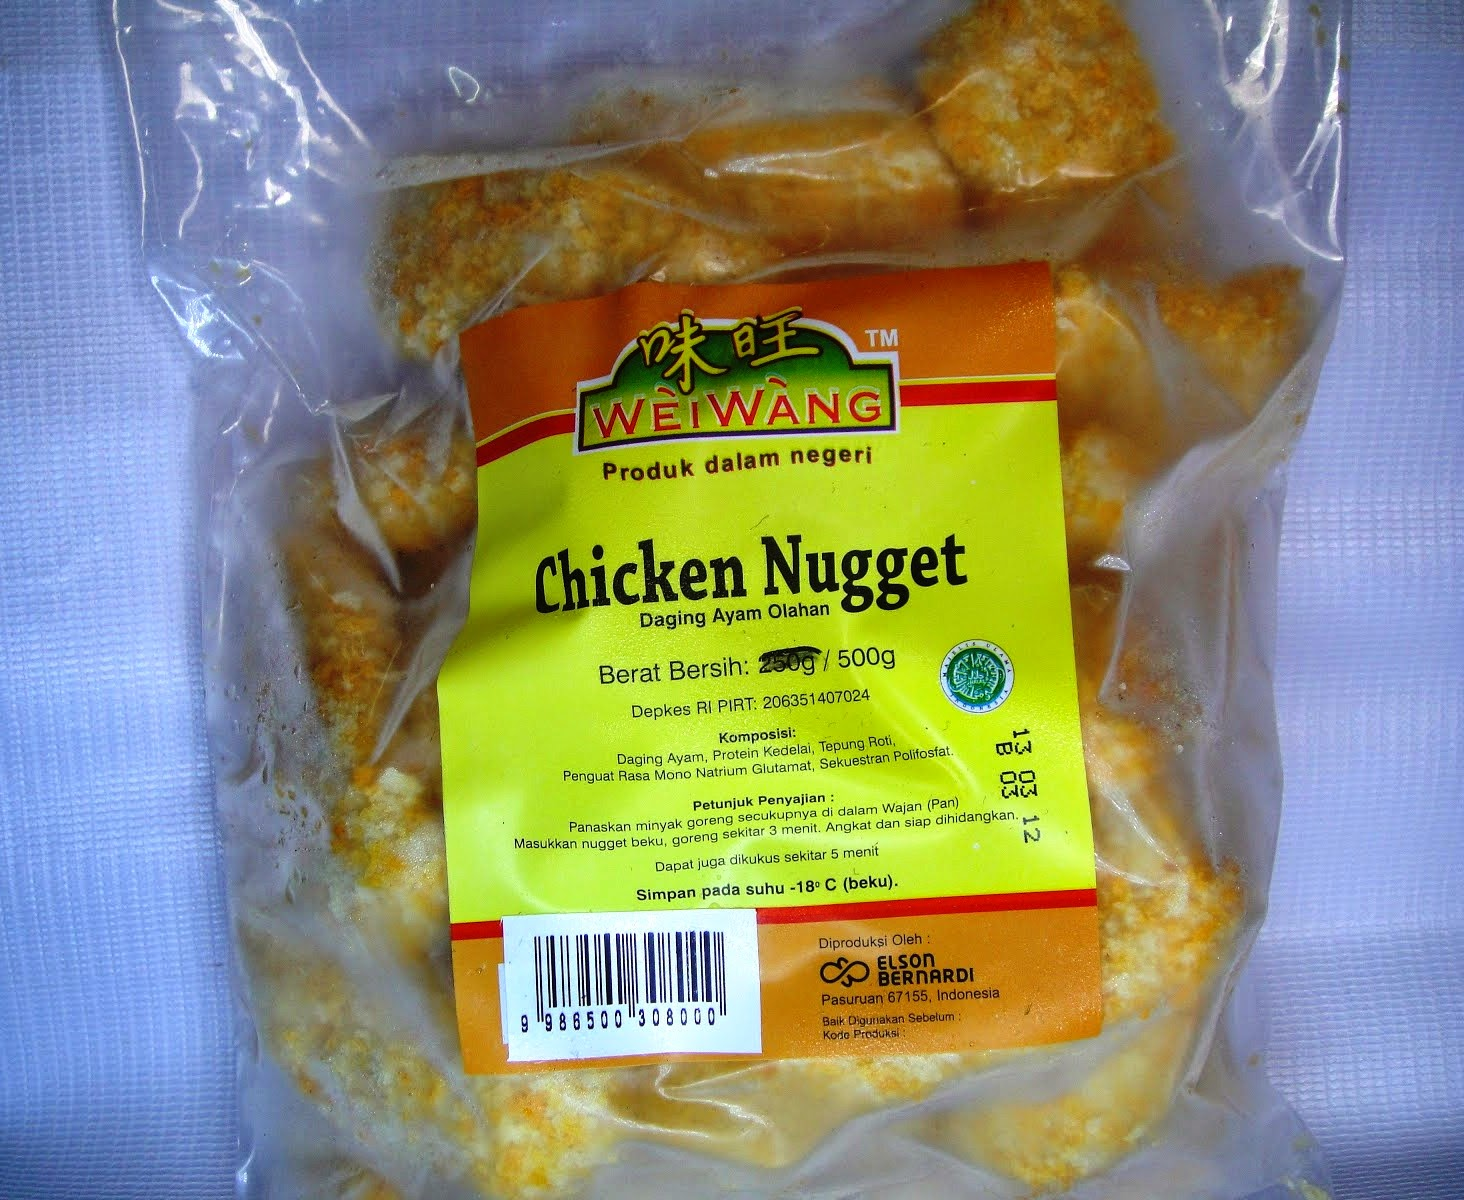 Weiwang Armera Food Indonesia Belfood Nugget Stick 500gr Chicken 250g 500g